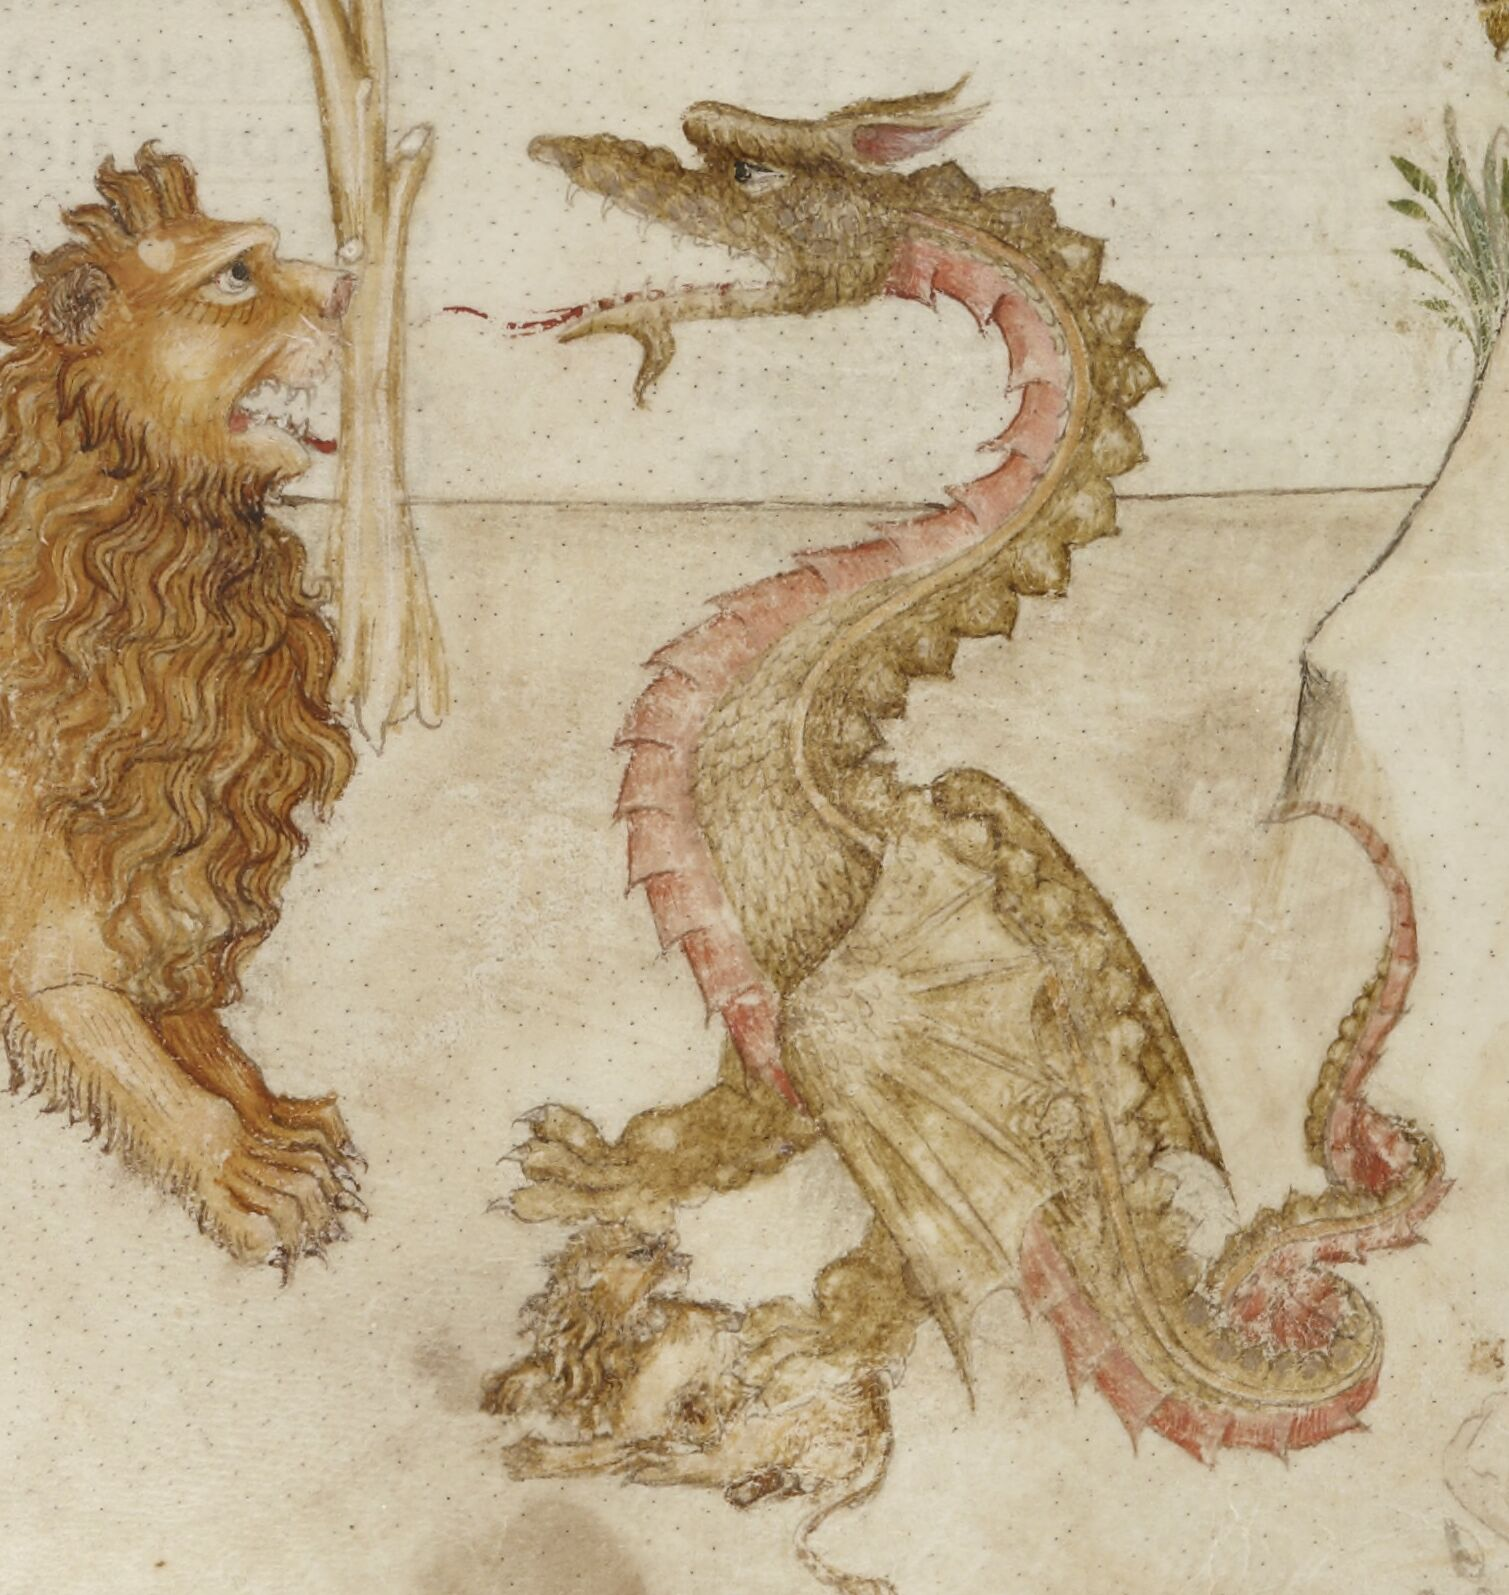 Dragon steals a lioncub